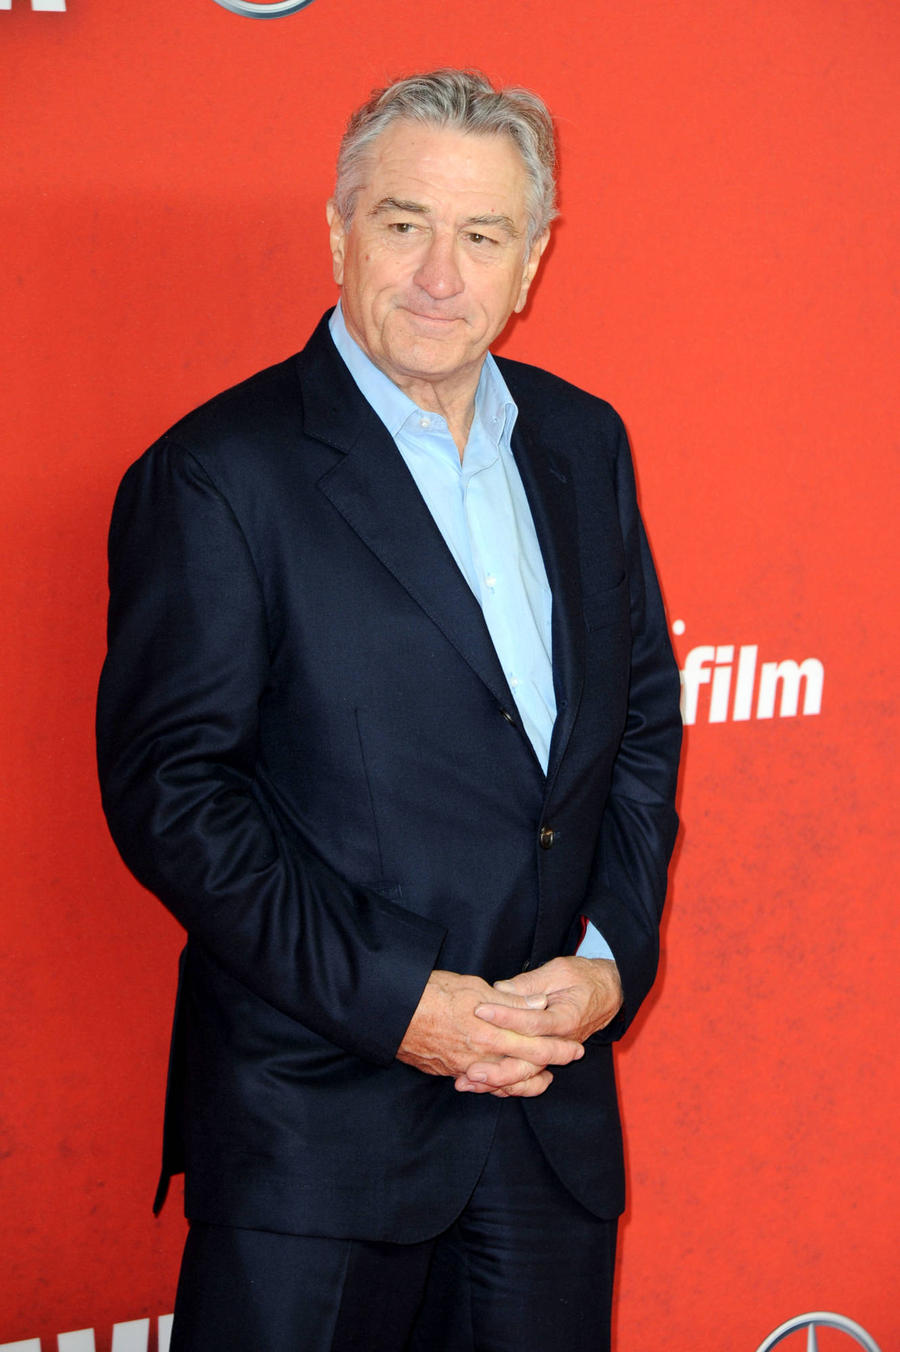 Robert De Niro Lands Sarajevo Film Festival's First Lifetime Achievement Award